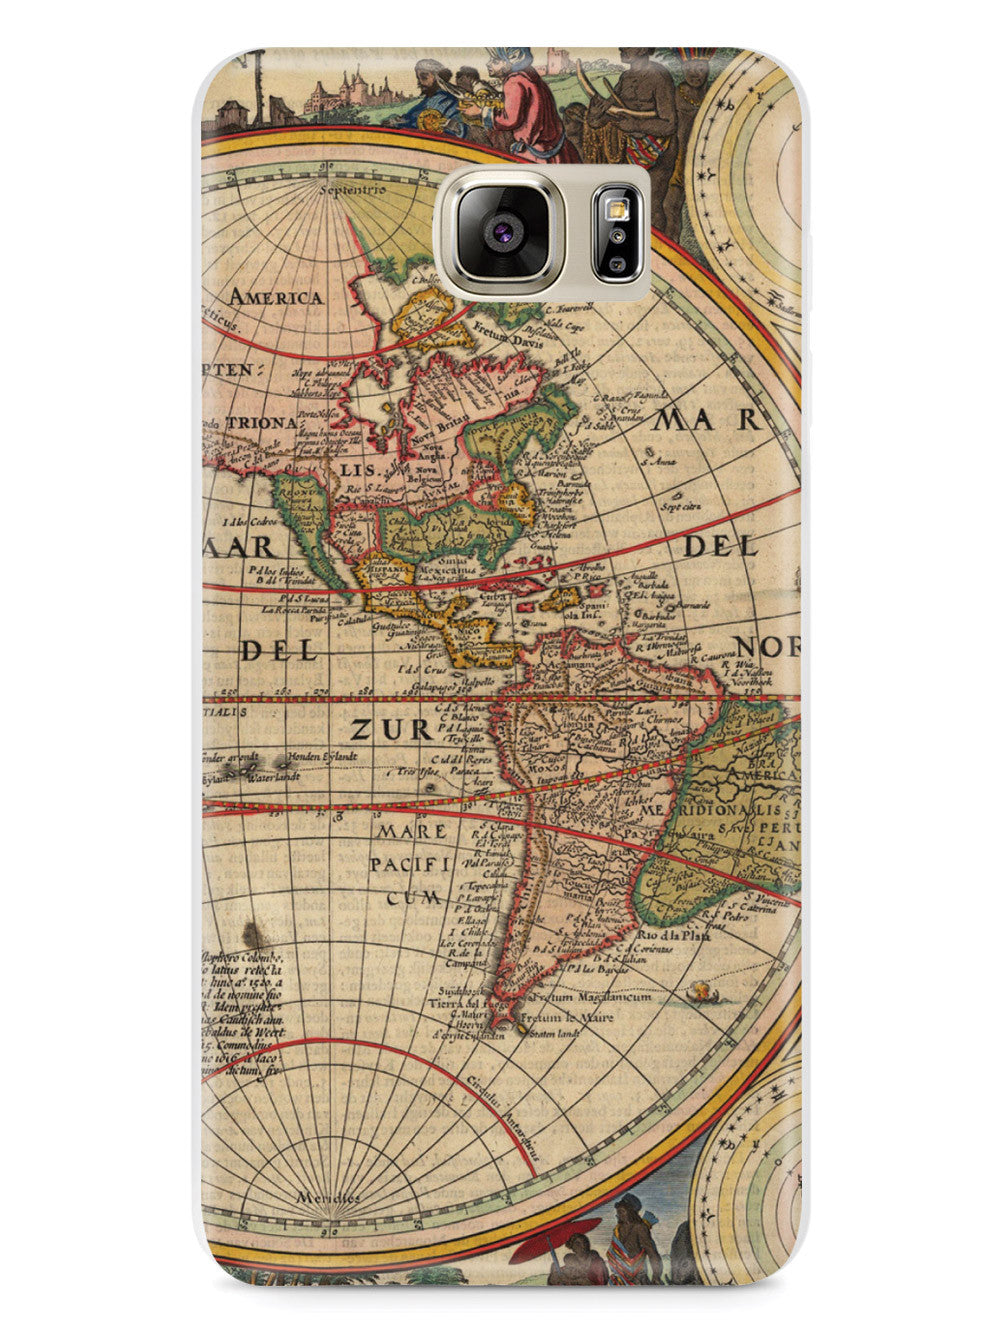 Vintage World Map - Americas Case